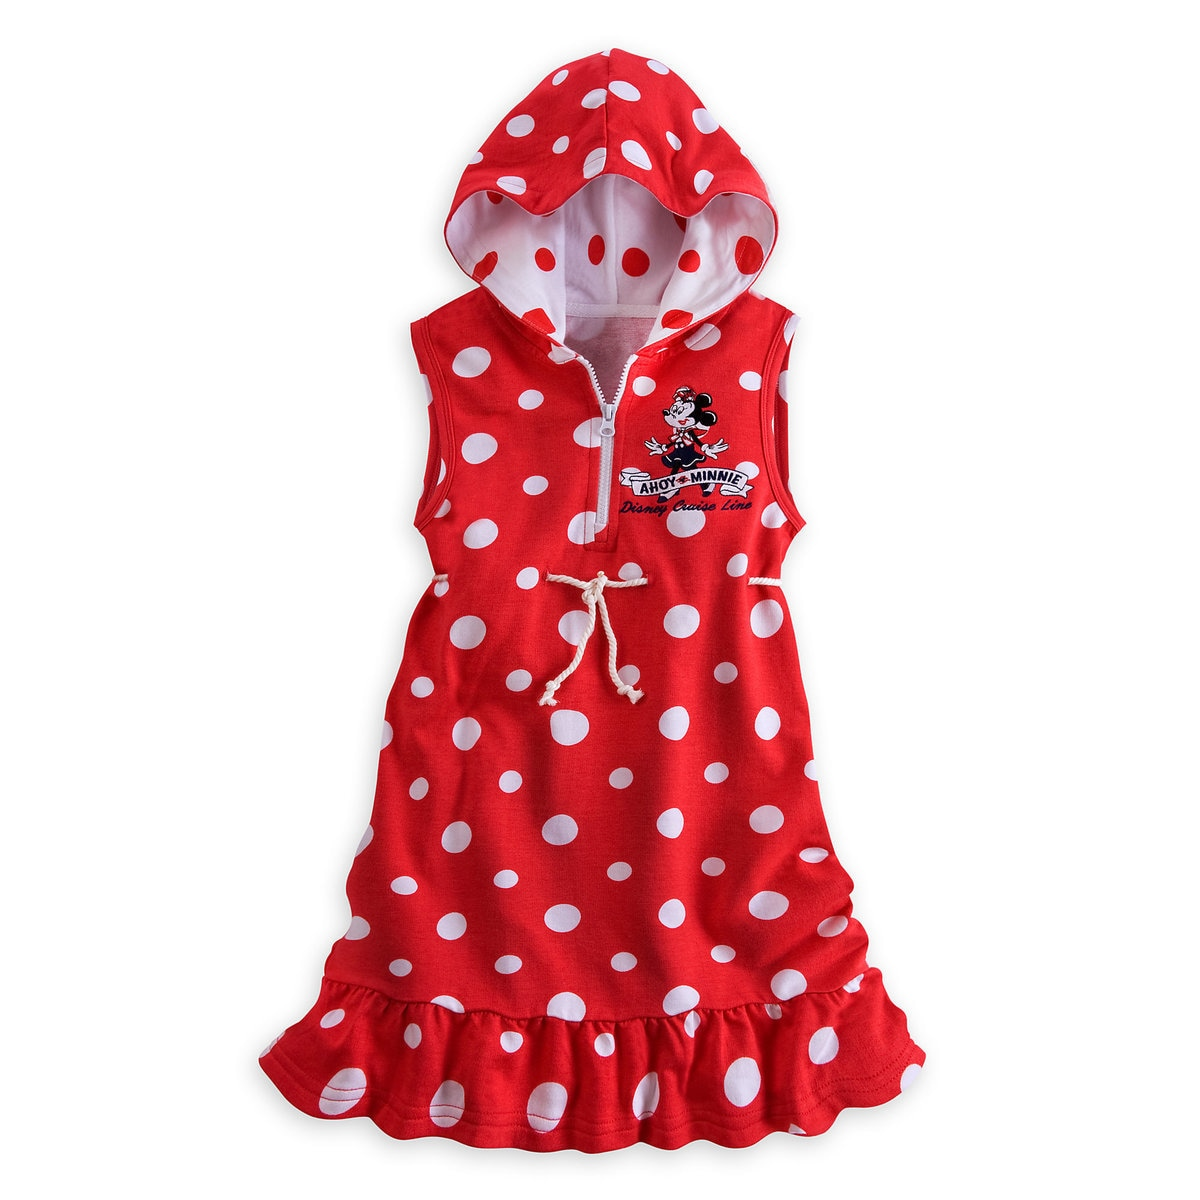 5b77724bf6 Product Image of Minnie Mouse Swim Cover-Up for Girls - Disney Cruise Line #